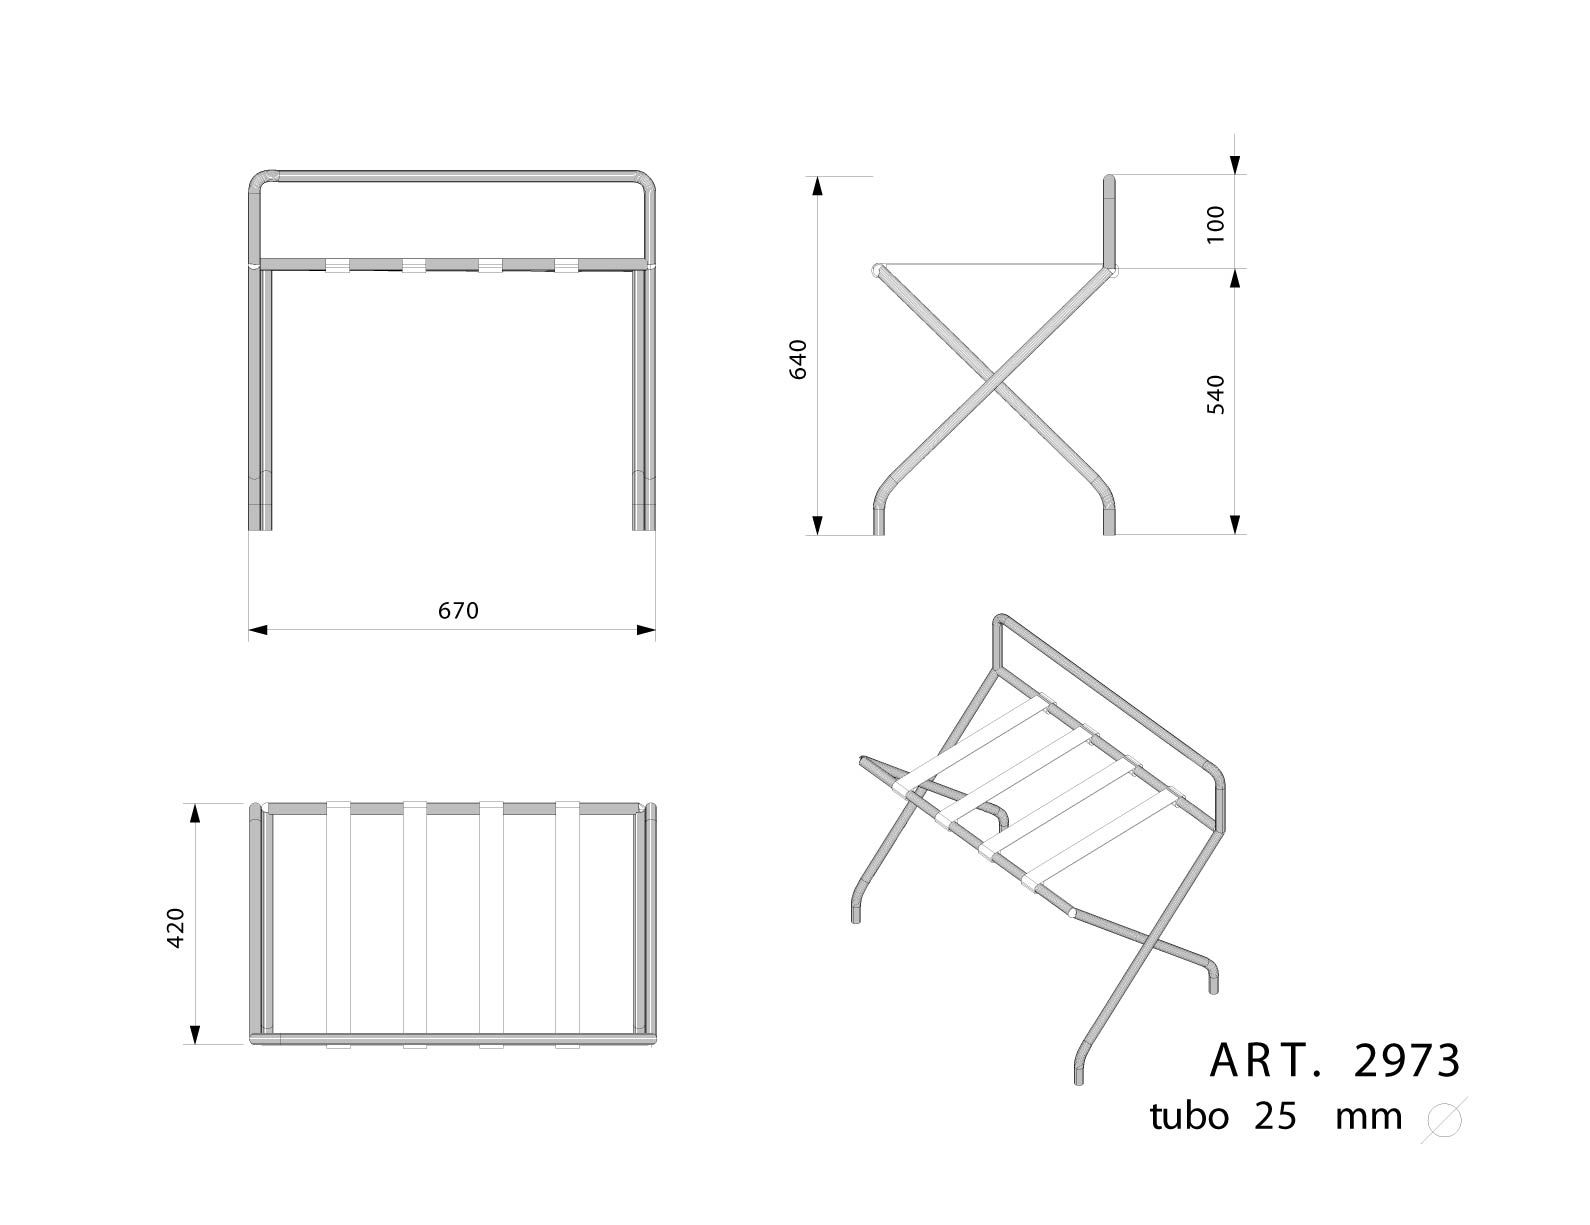 Luggage Rack Dimensions